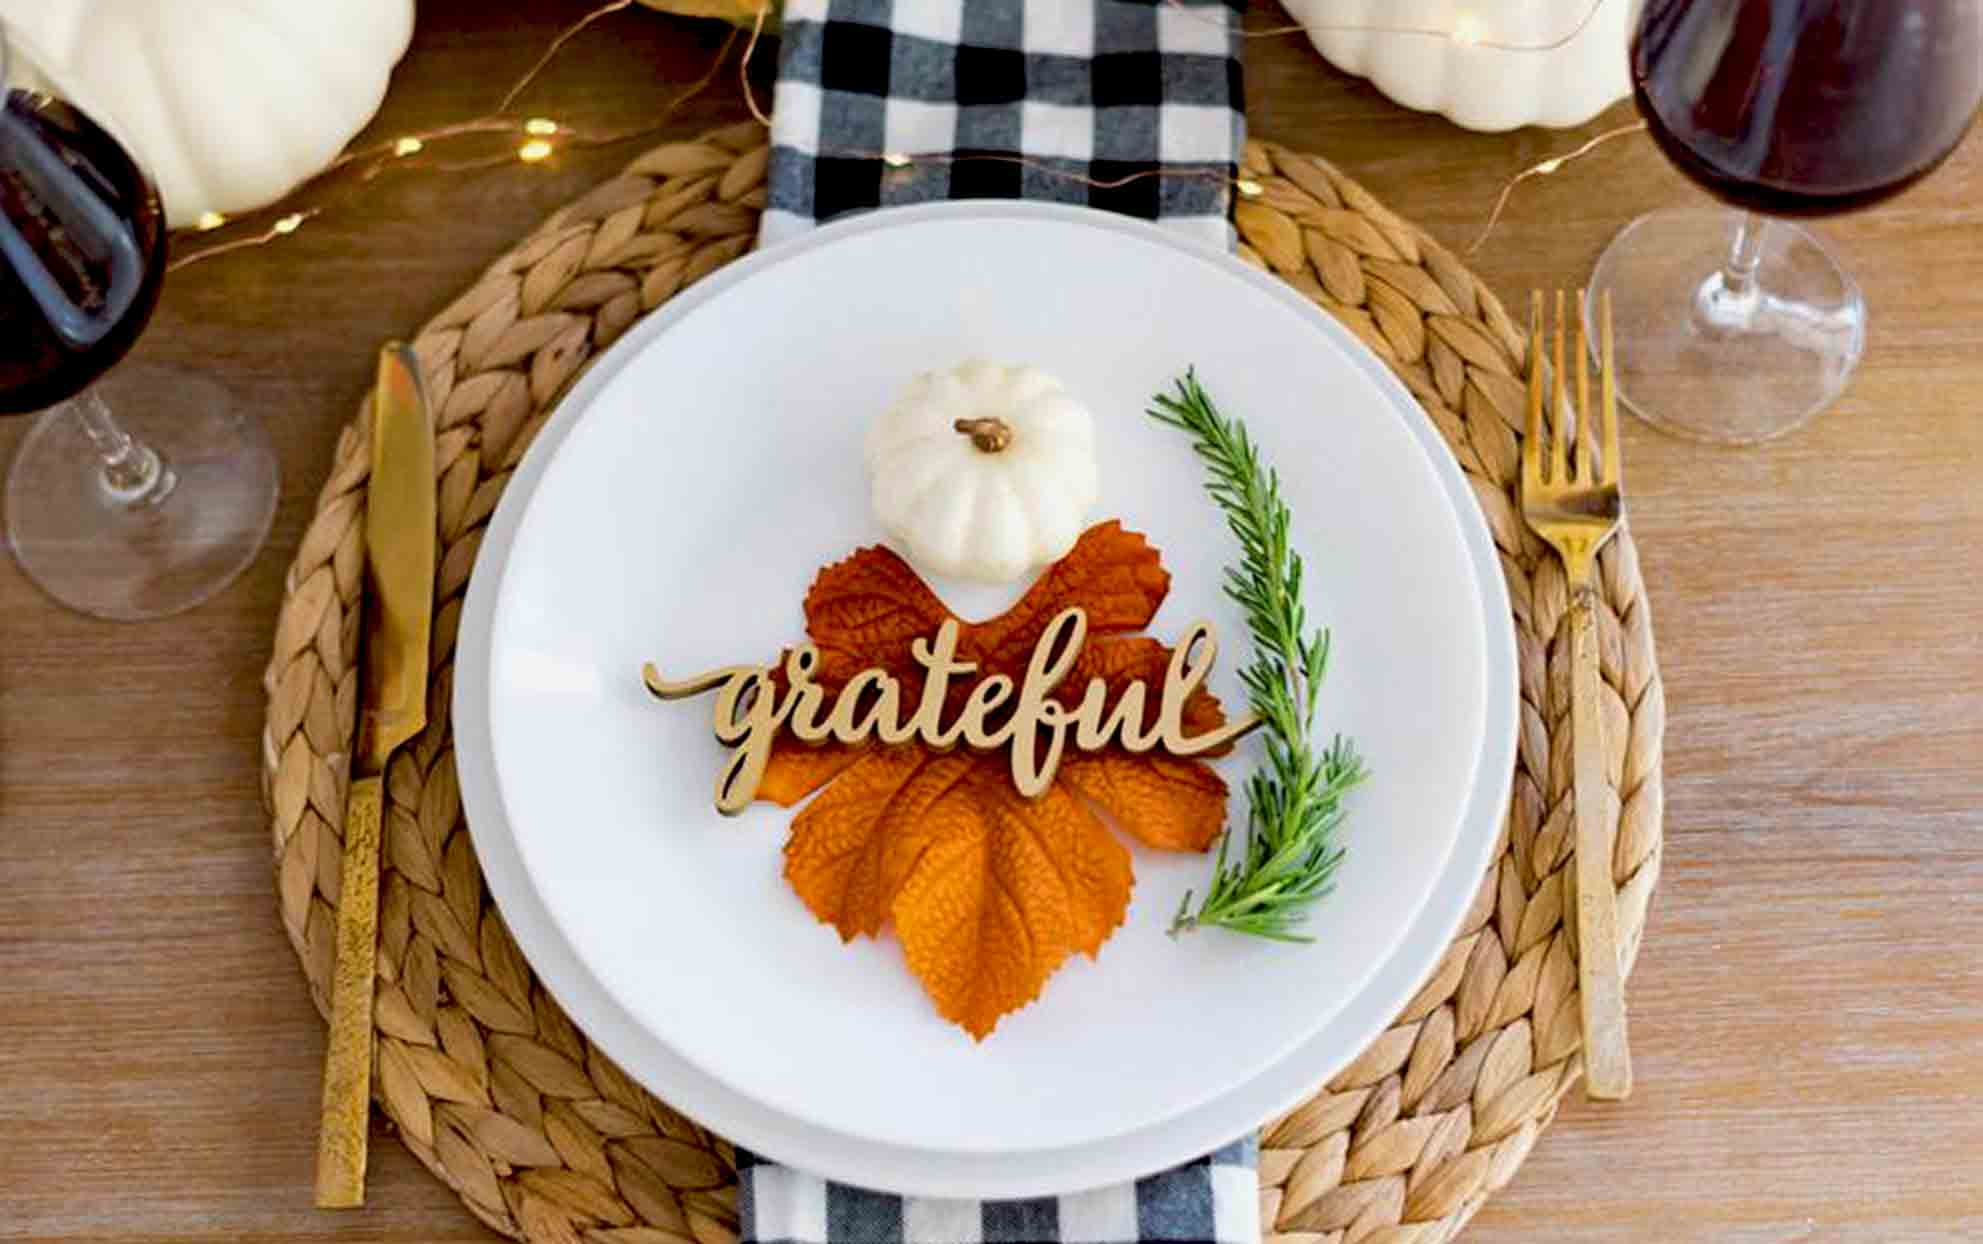 Grateful Thanksgiving place setting on a wooden table